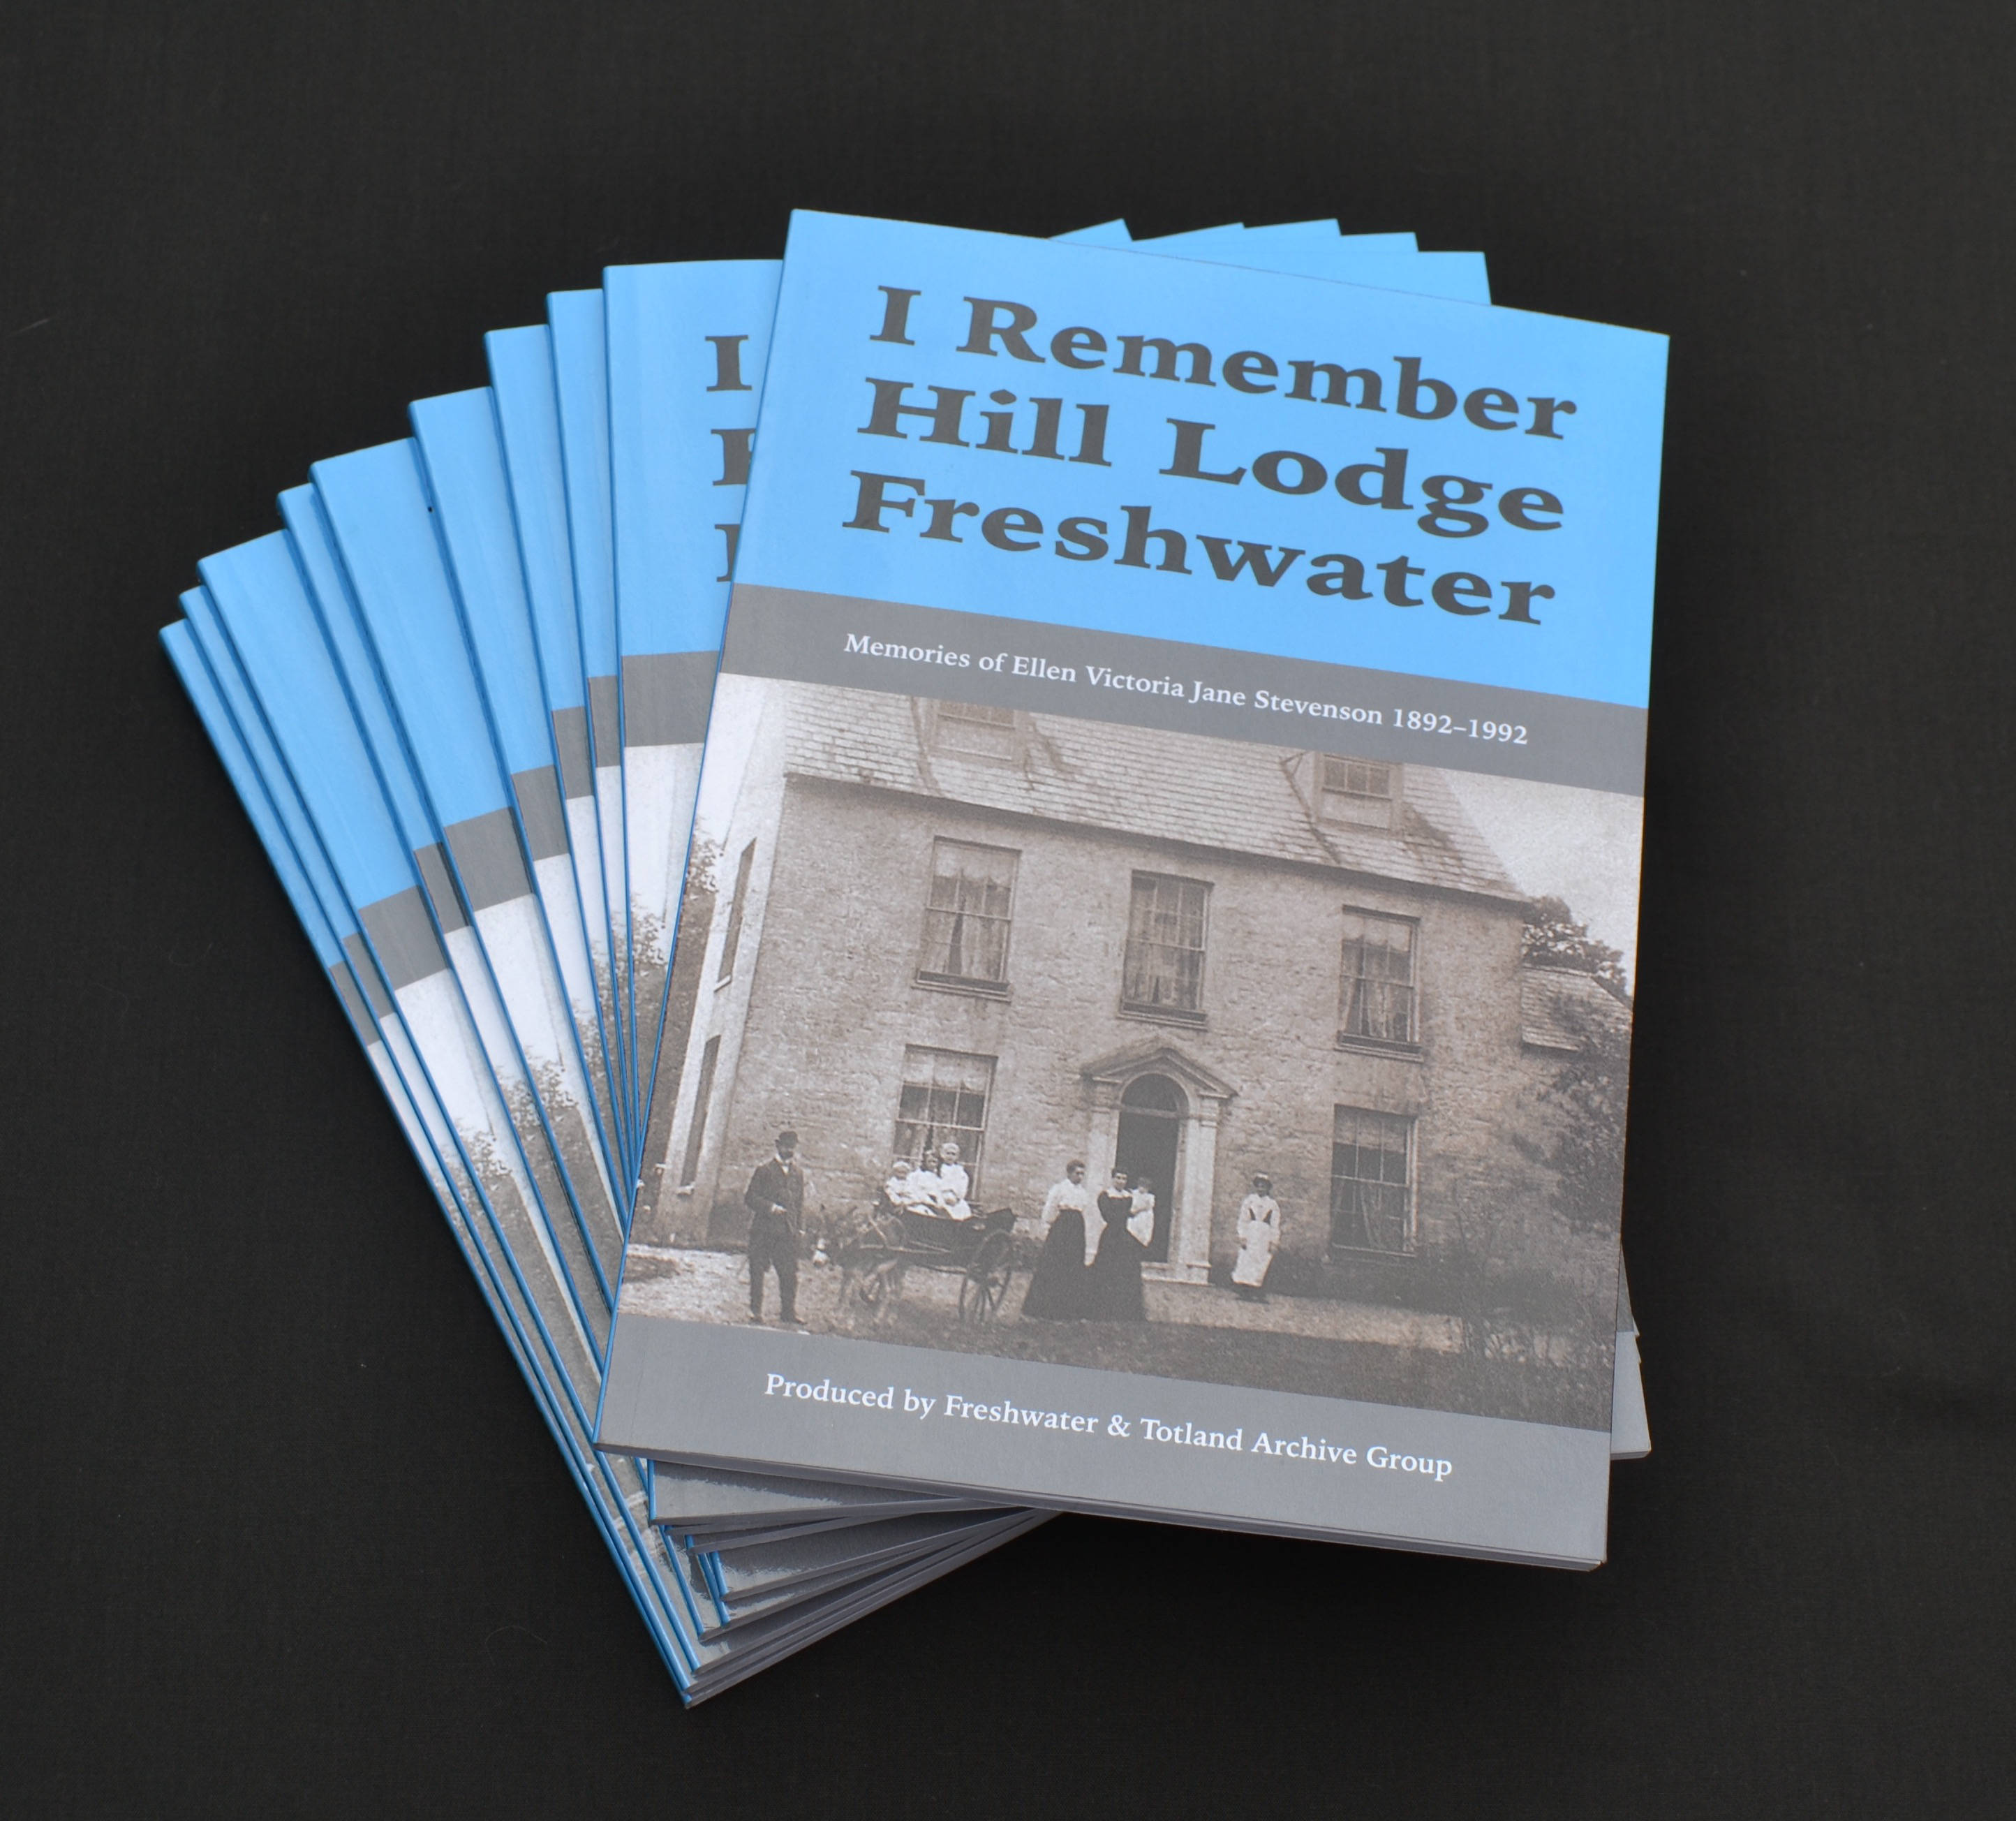 I Remember Hill Lodge Freshwater by Freshwater & Totland Archive Group - Pack Shot and Cover - Web Small